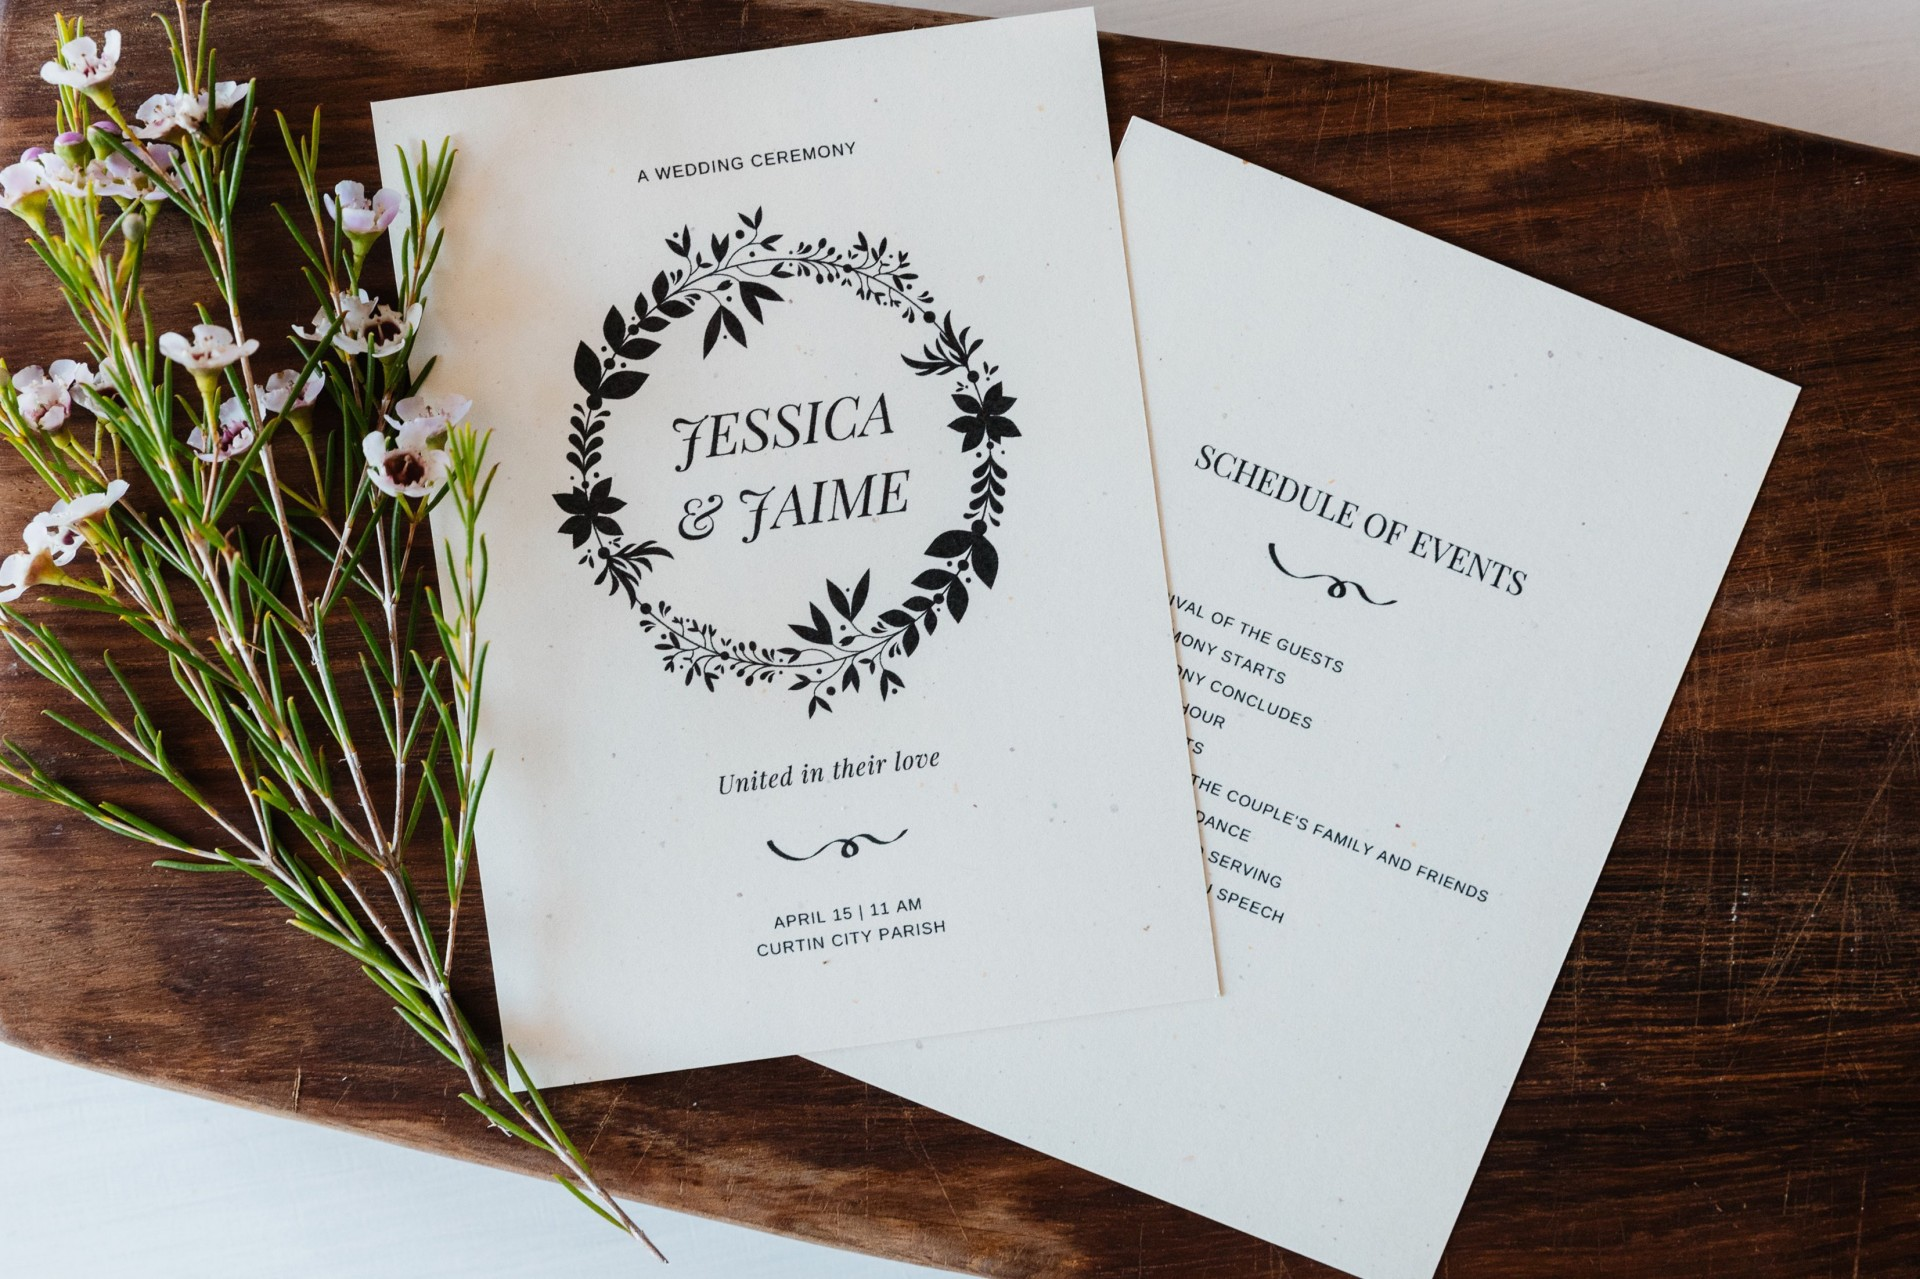 008 Surprising Wedding Order Of Service Template Free Download Example  Downloadable That Can Be Printed1920